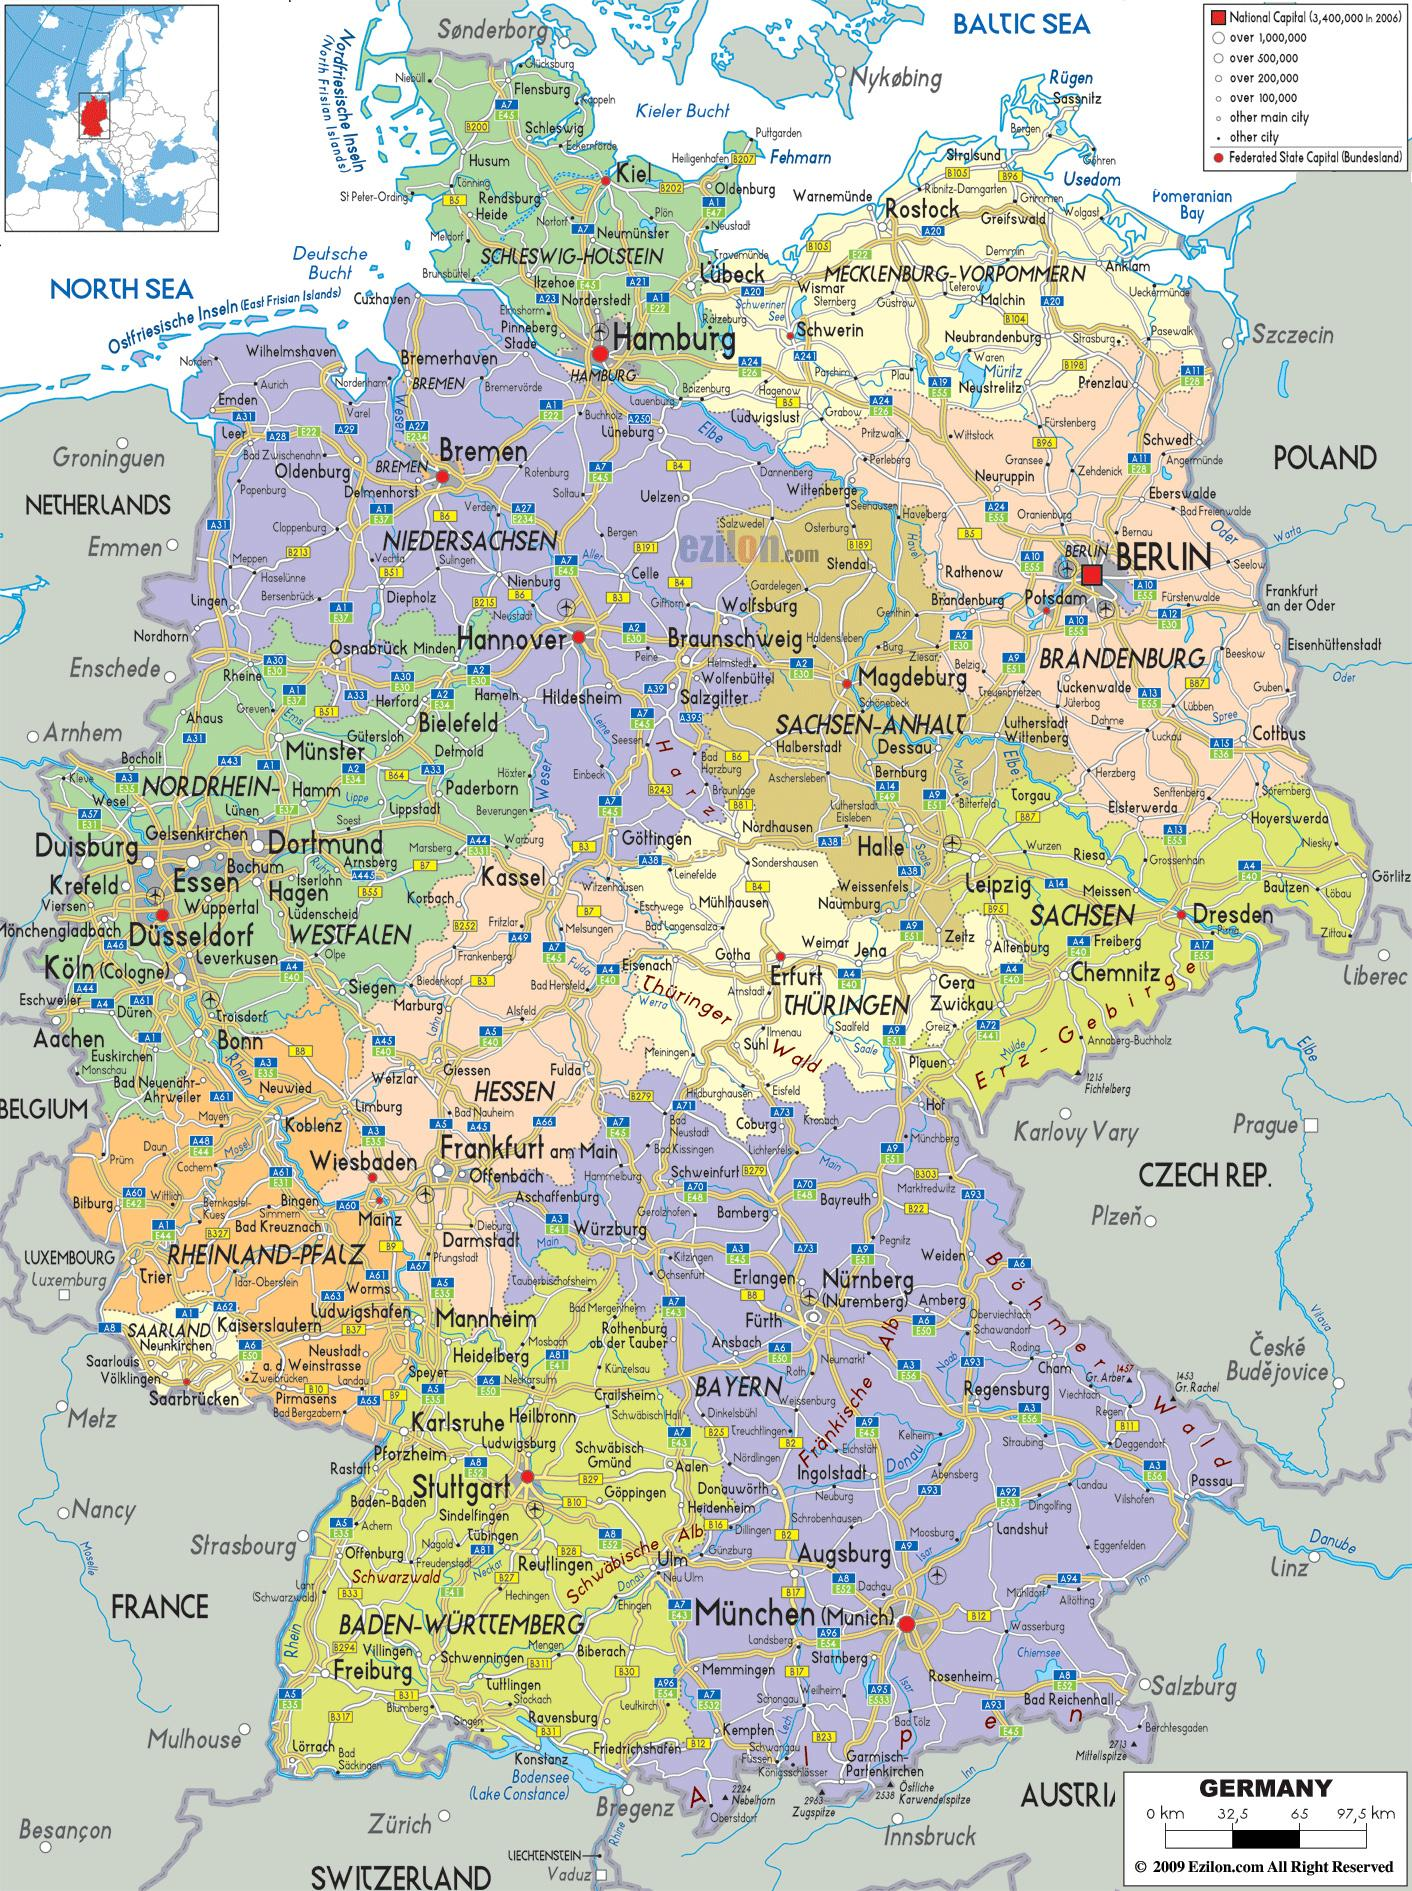 Germany city map - Map cities Germany (Western Europe - Europe)